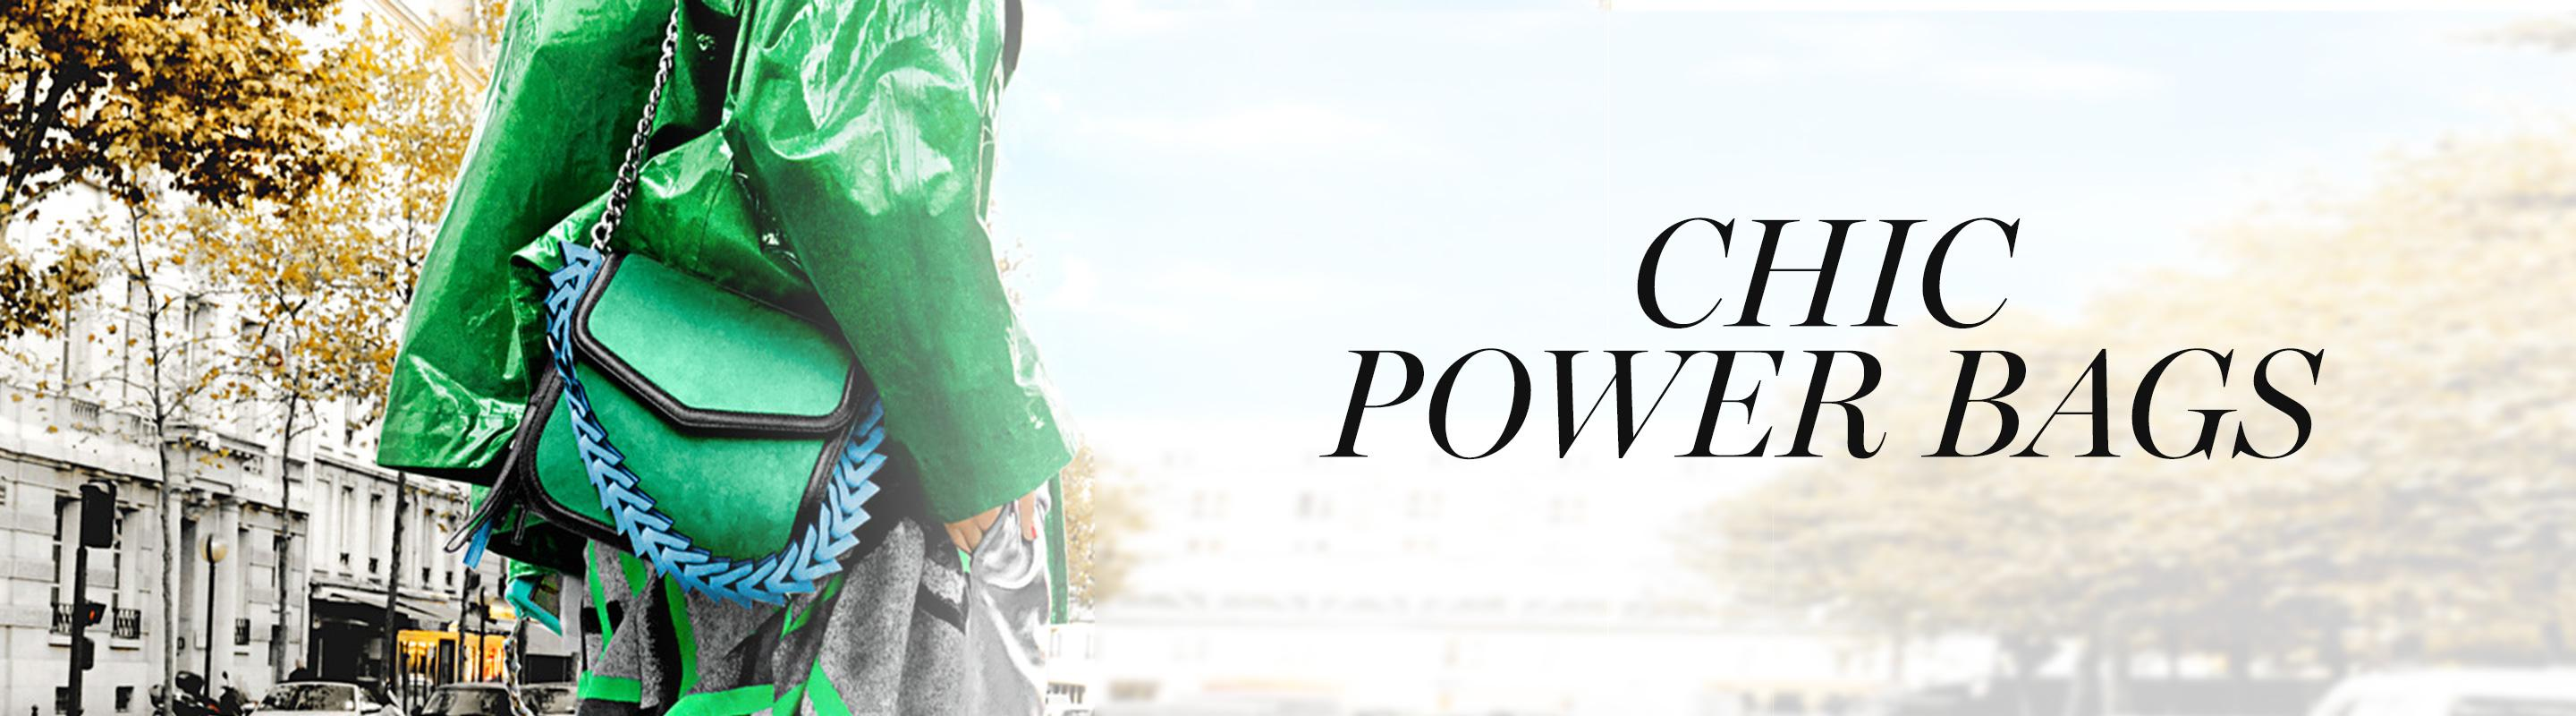 Chic Power Bags